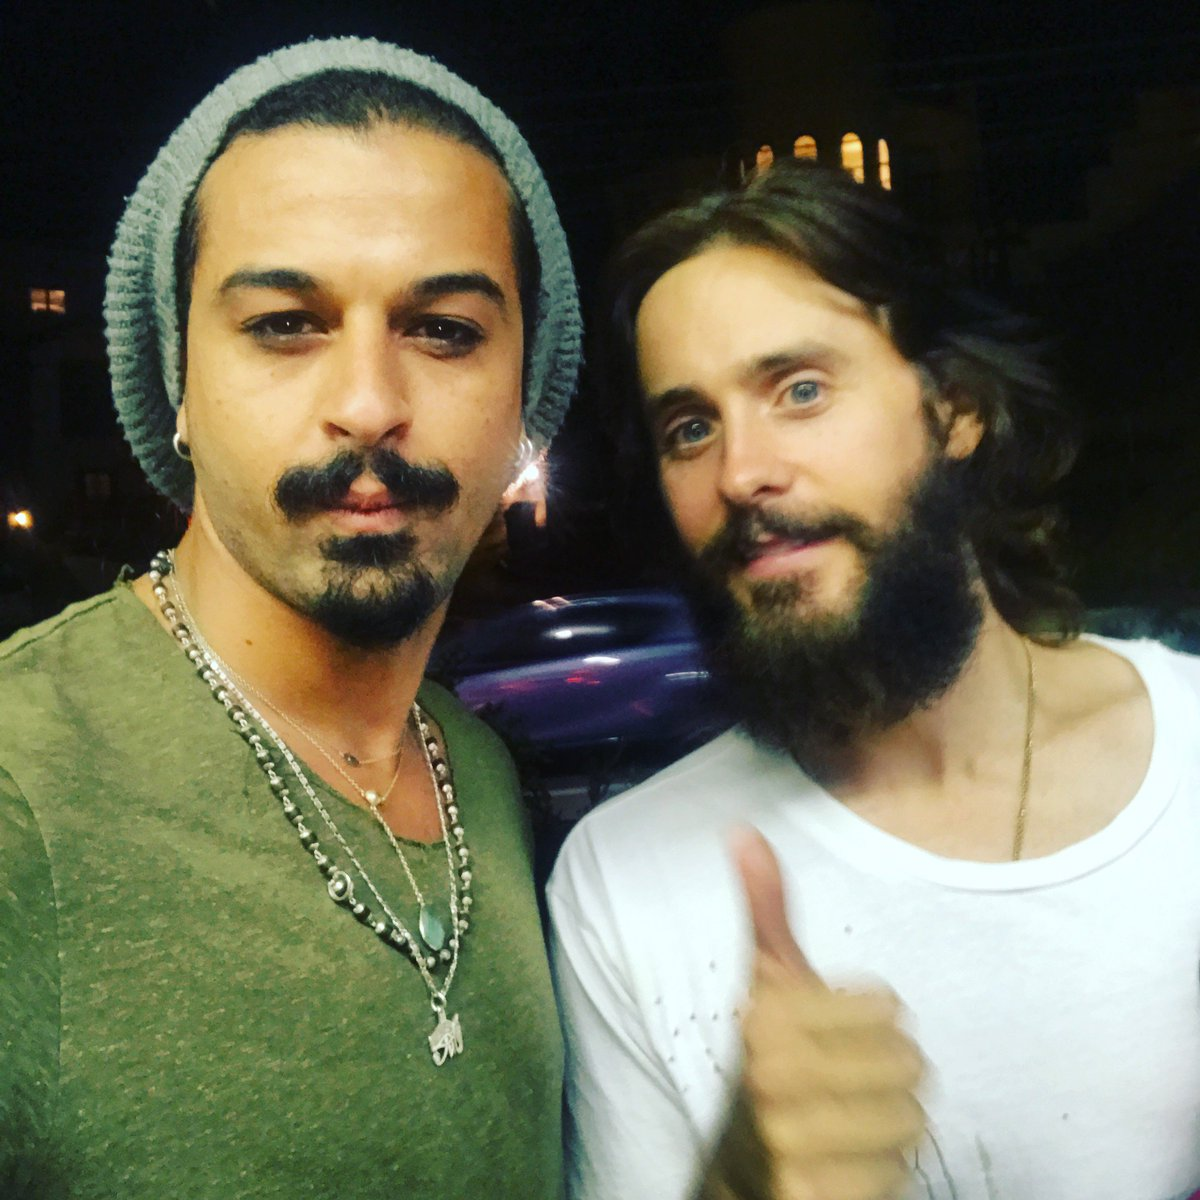 With the great and amazing @JaredLeto #hollywood #jaredleto #showwhight<br>http://pic.twitter.com/mbIPoeVlJo